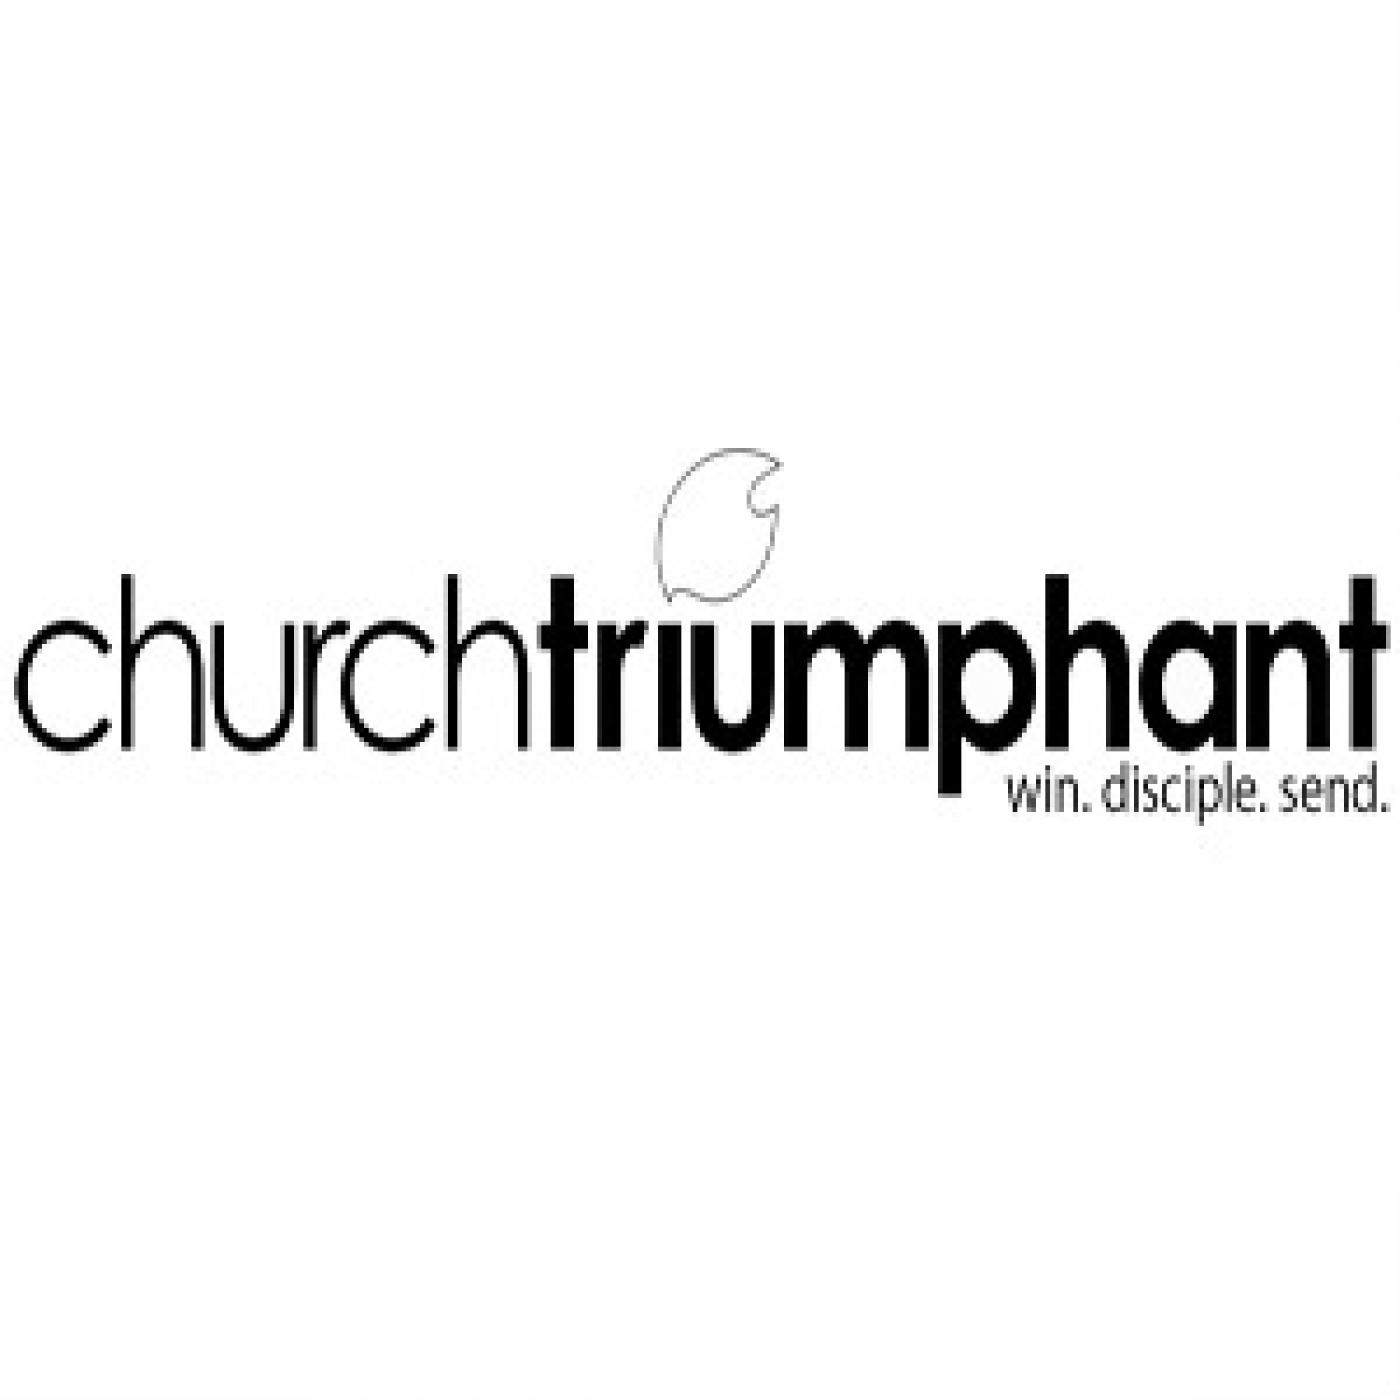 Church Triumphant